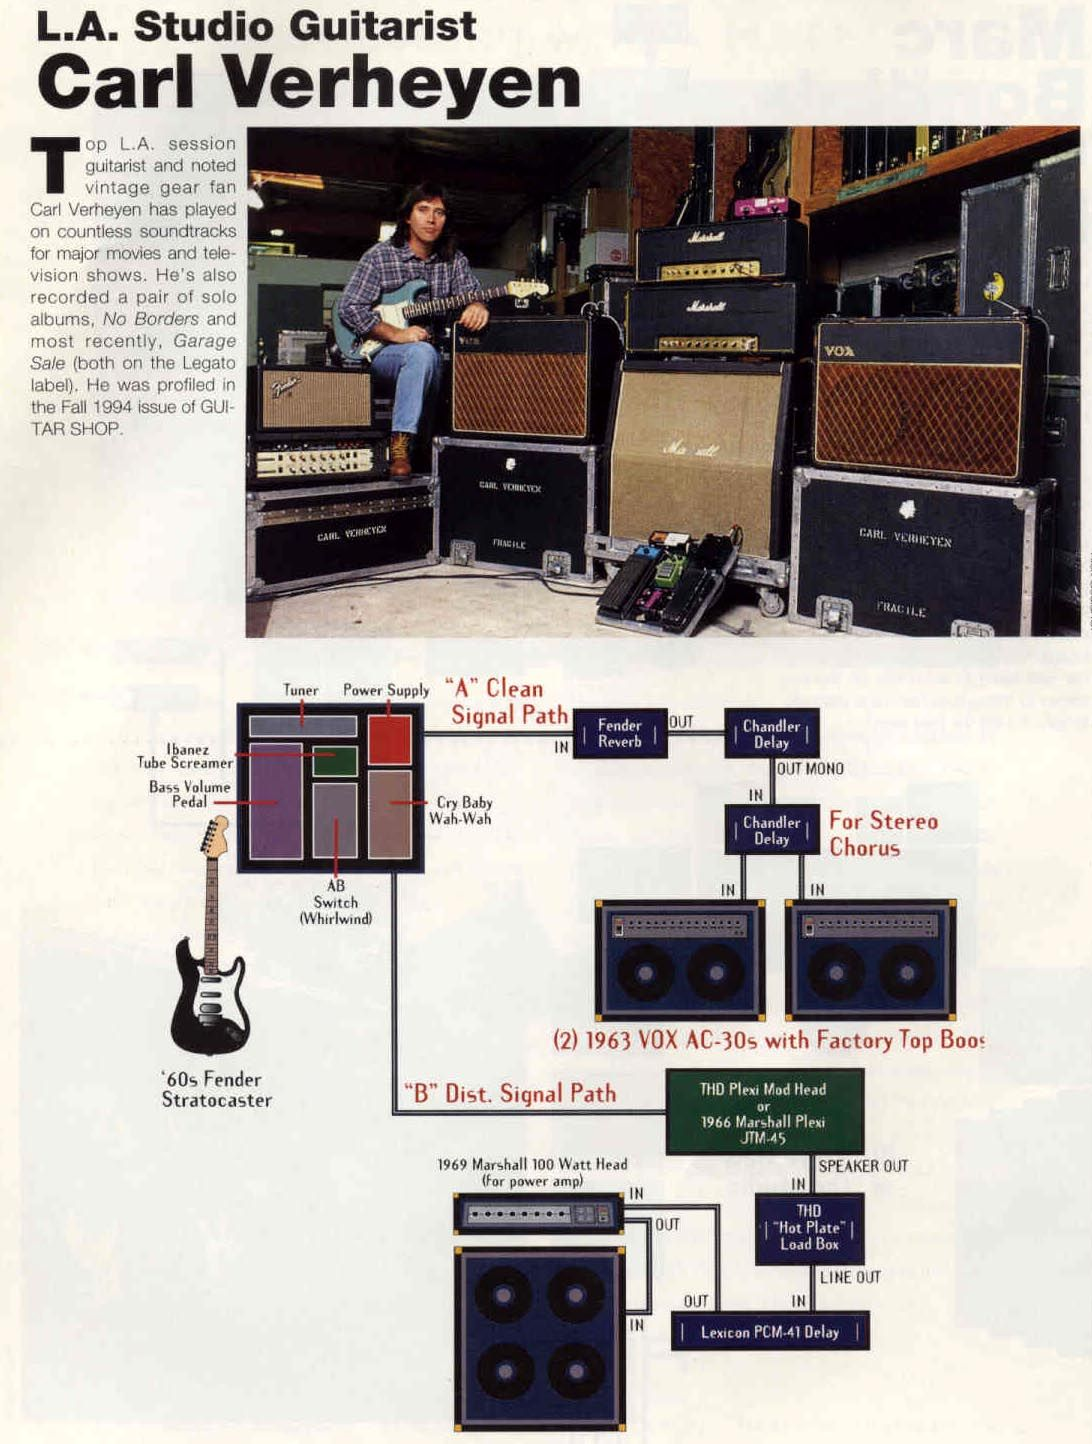 Carl Verheyen Guitar Rig 1995 Shop Rigs Pinterest Vox V847 Wahwah Analysis